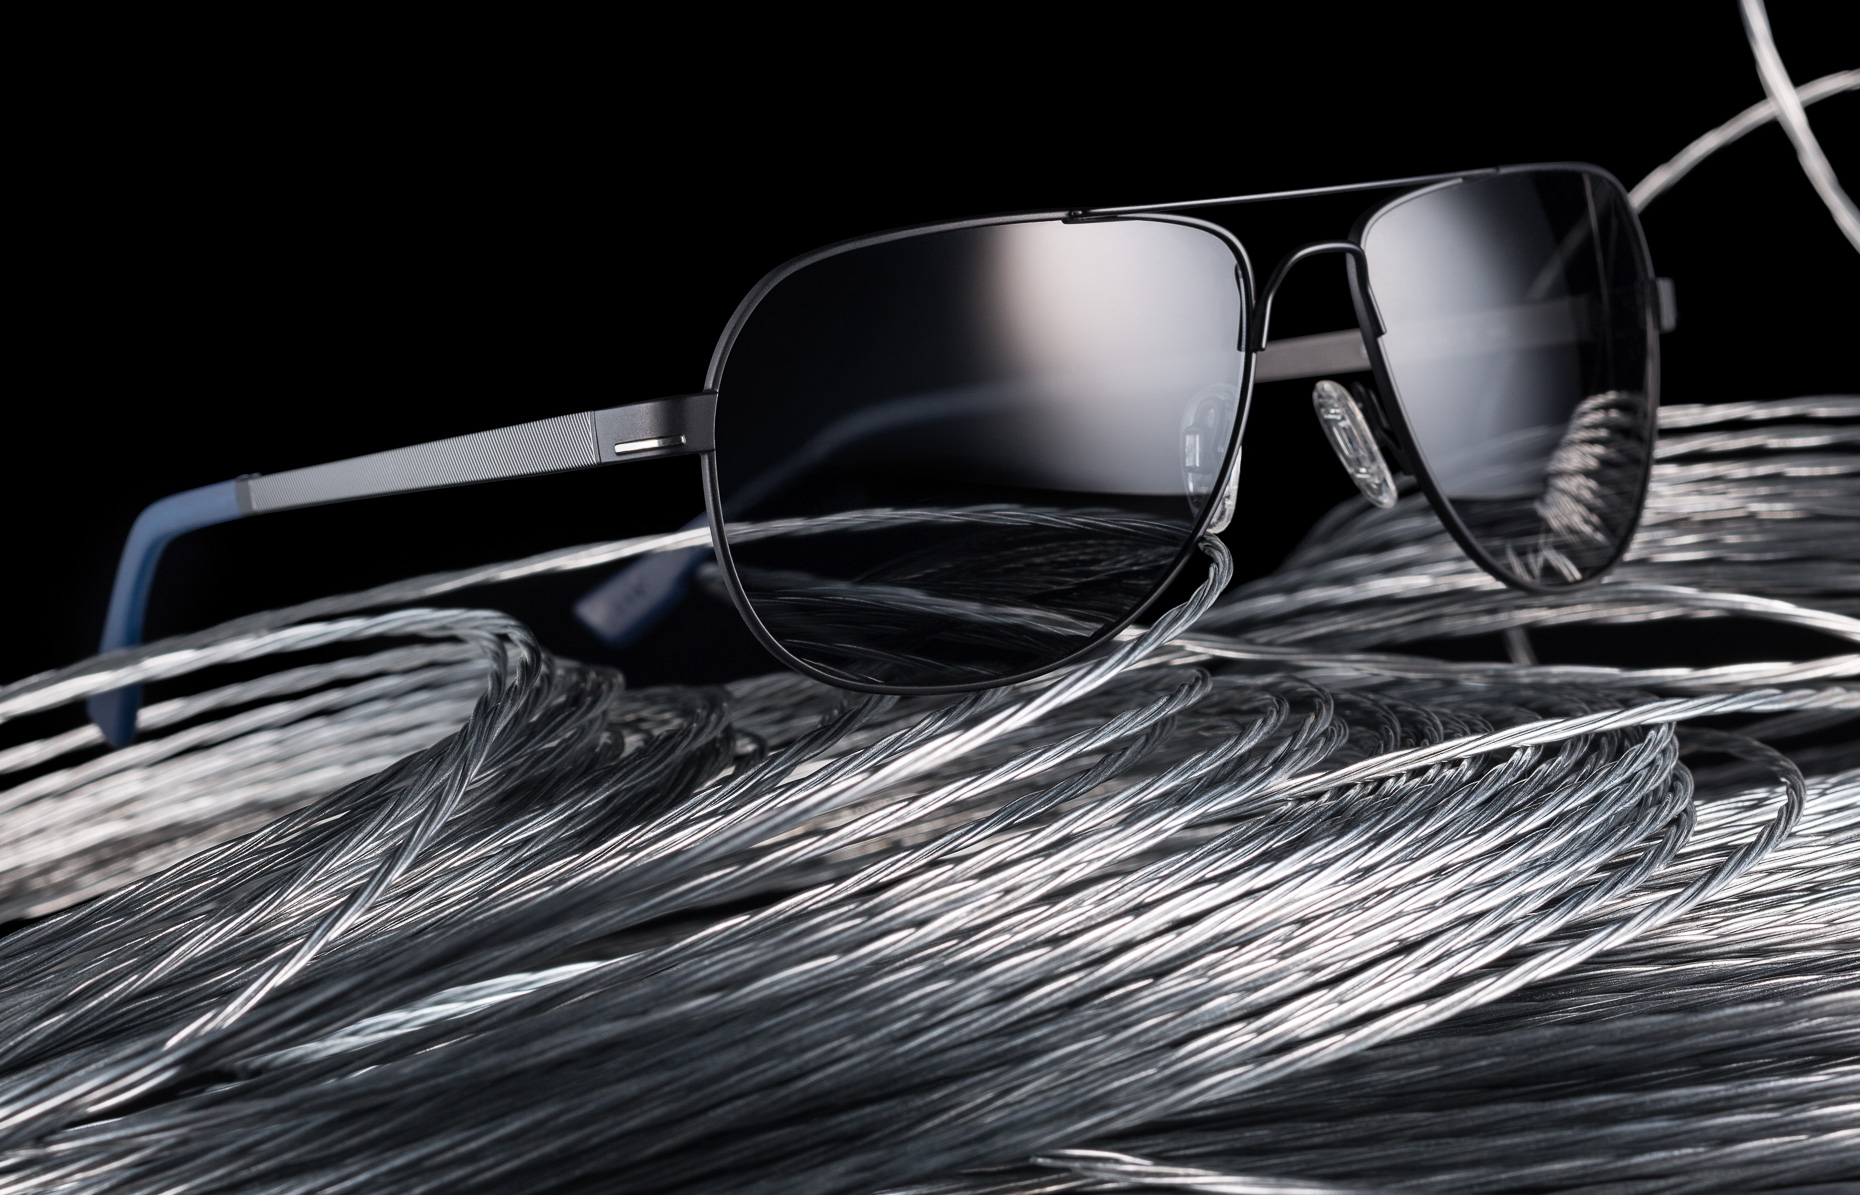 mens sunglasses conceptual photography still life with cable